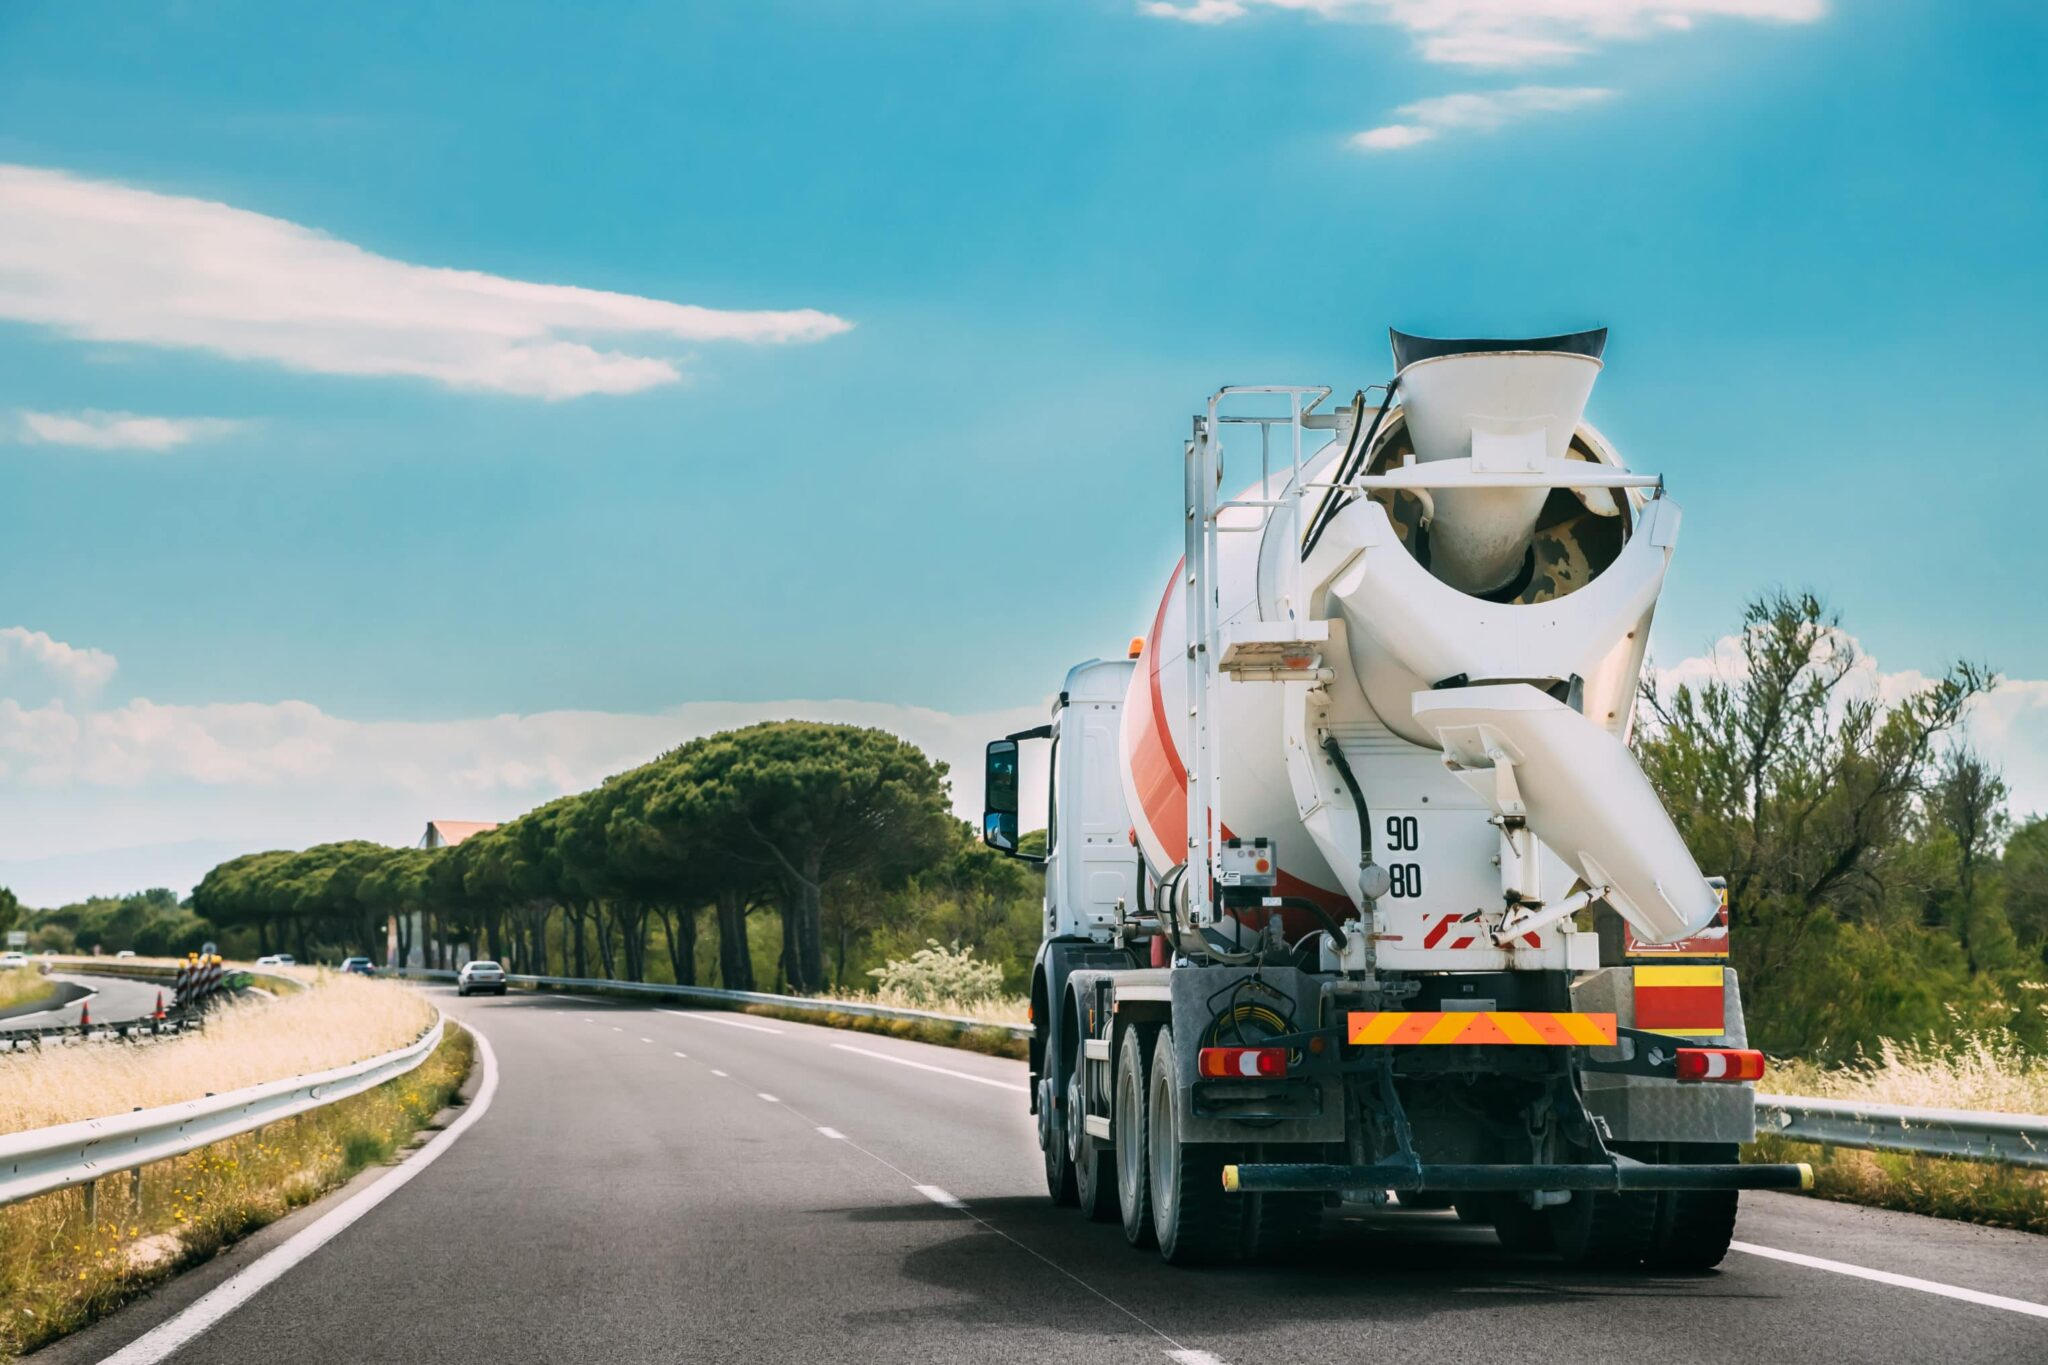 MIxer truck driving on an open road with a blue sky